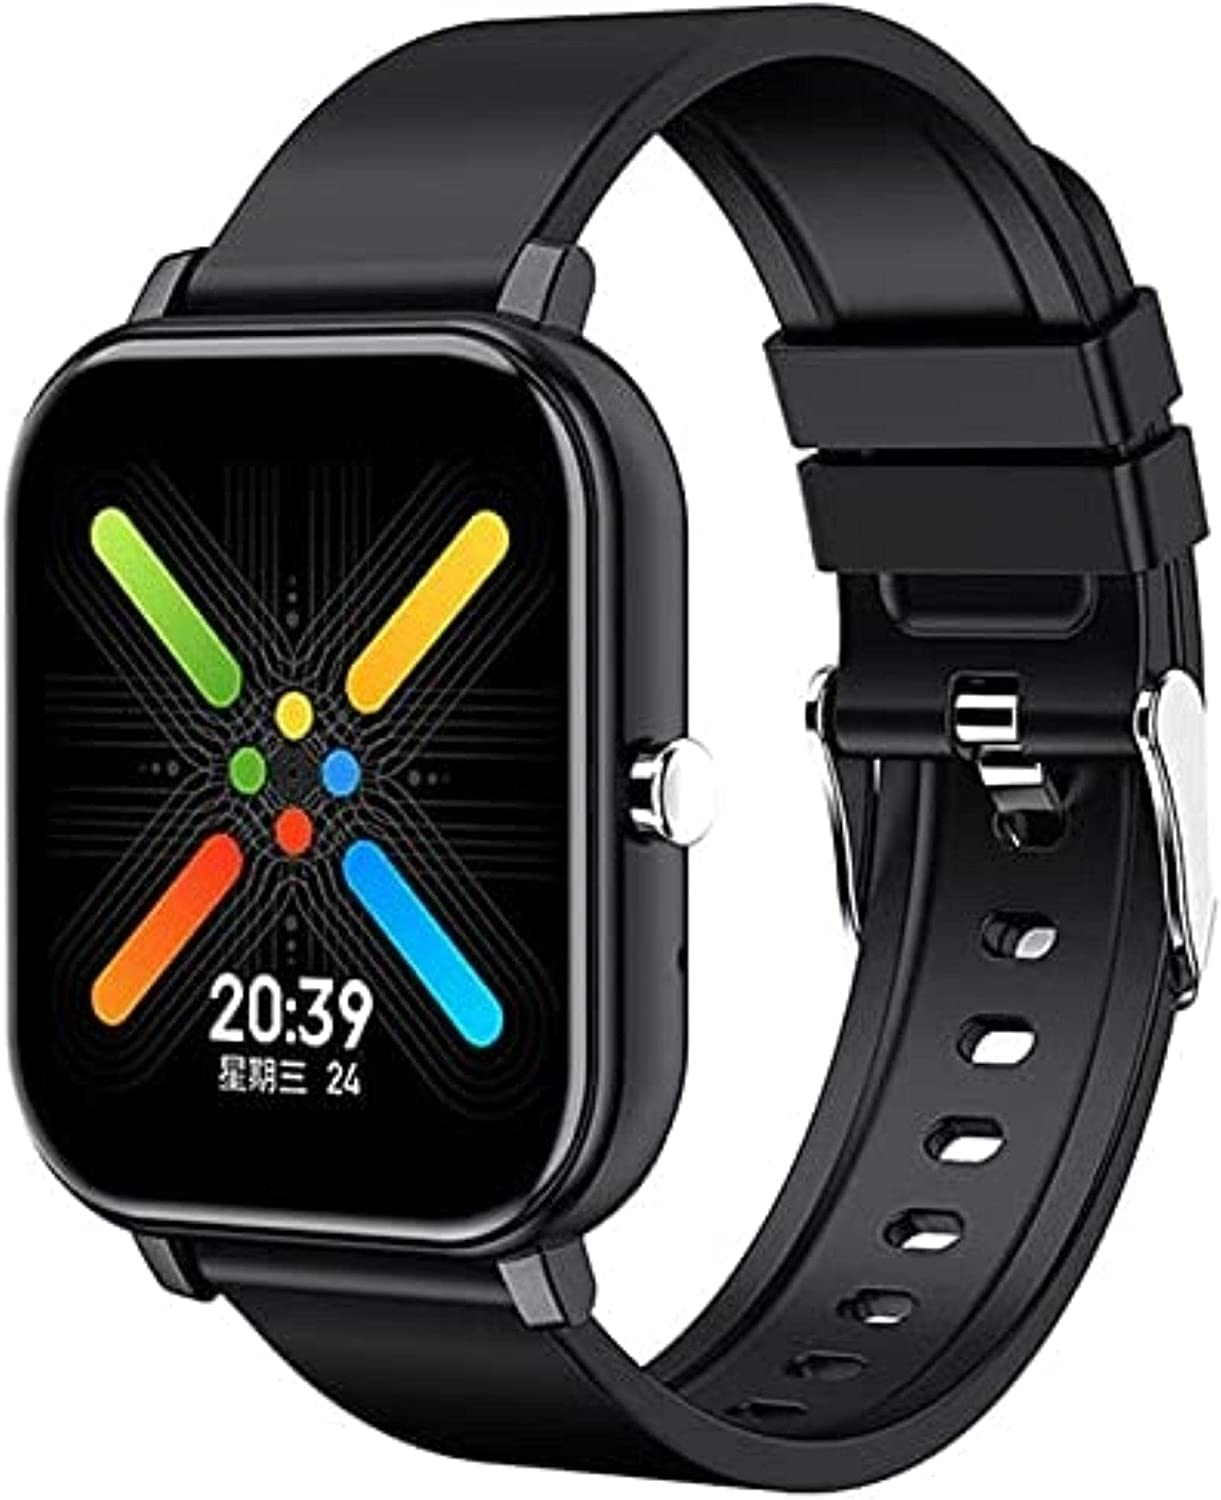 ZXCVBNN Smart Watch 1.54 inch Selling Screen Ranking TOP1 Bluetoot Full Color Touch